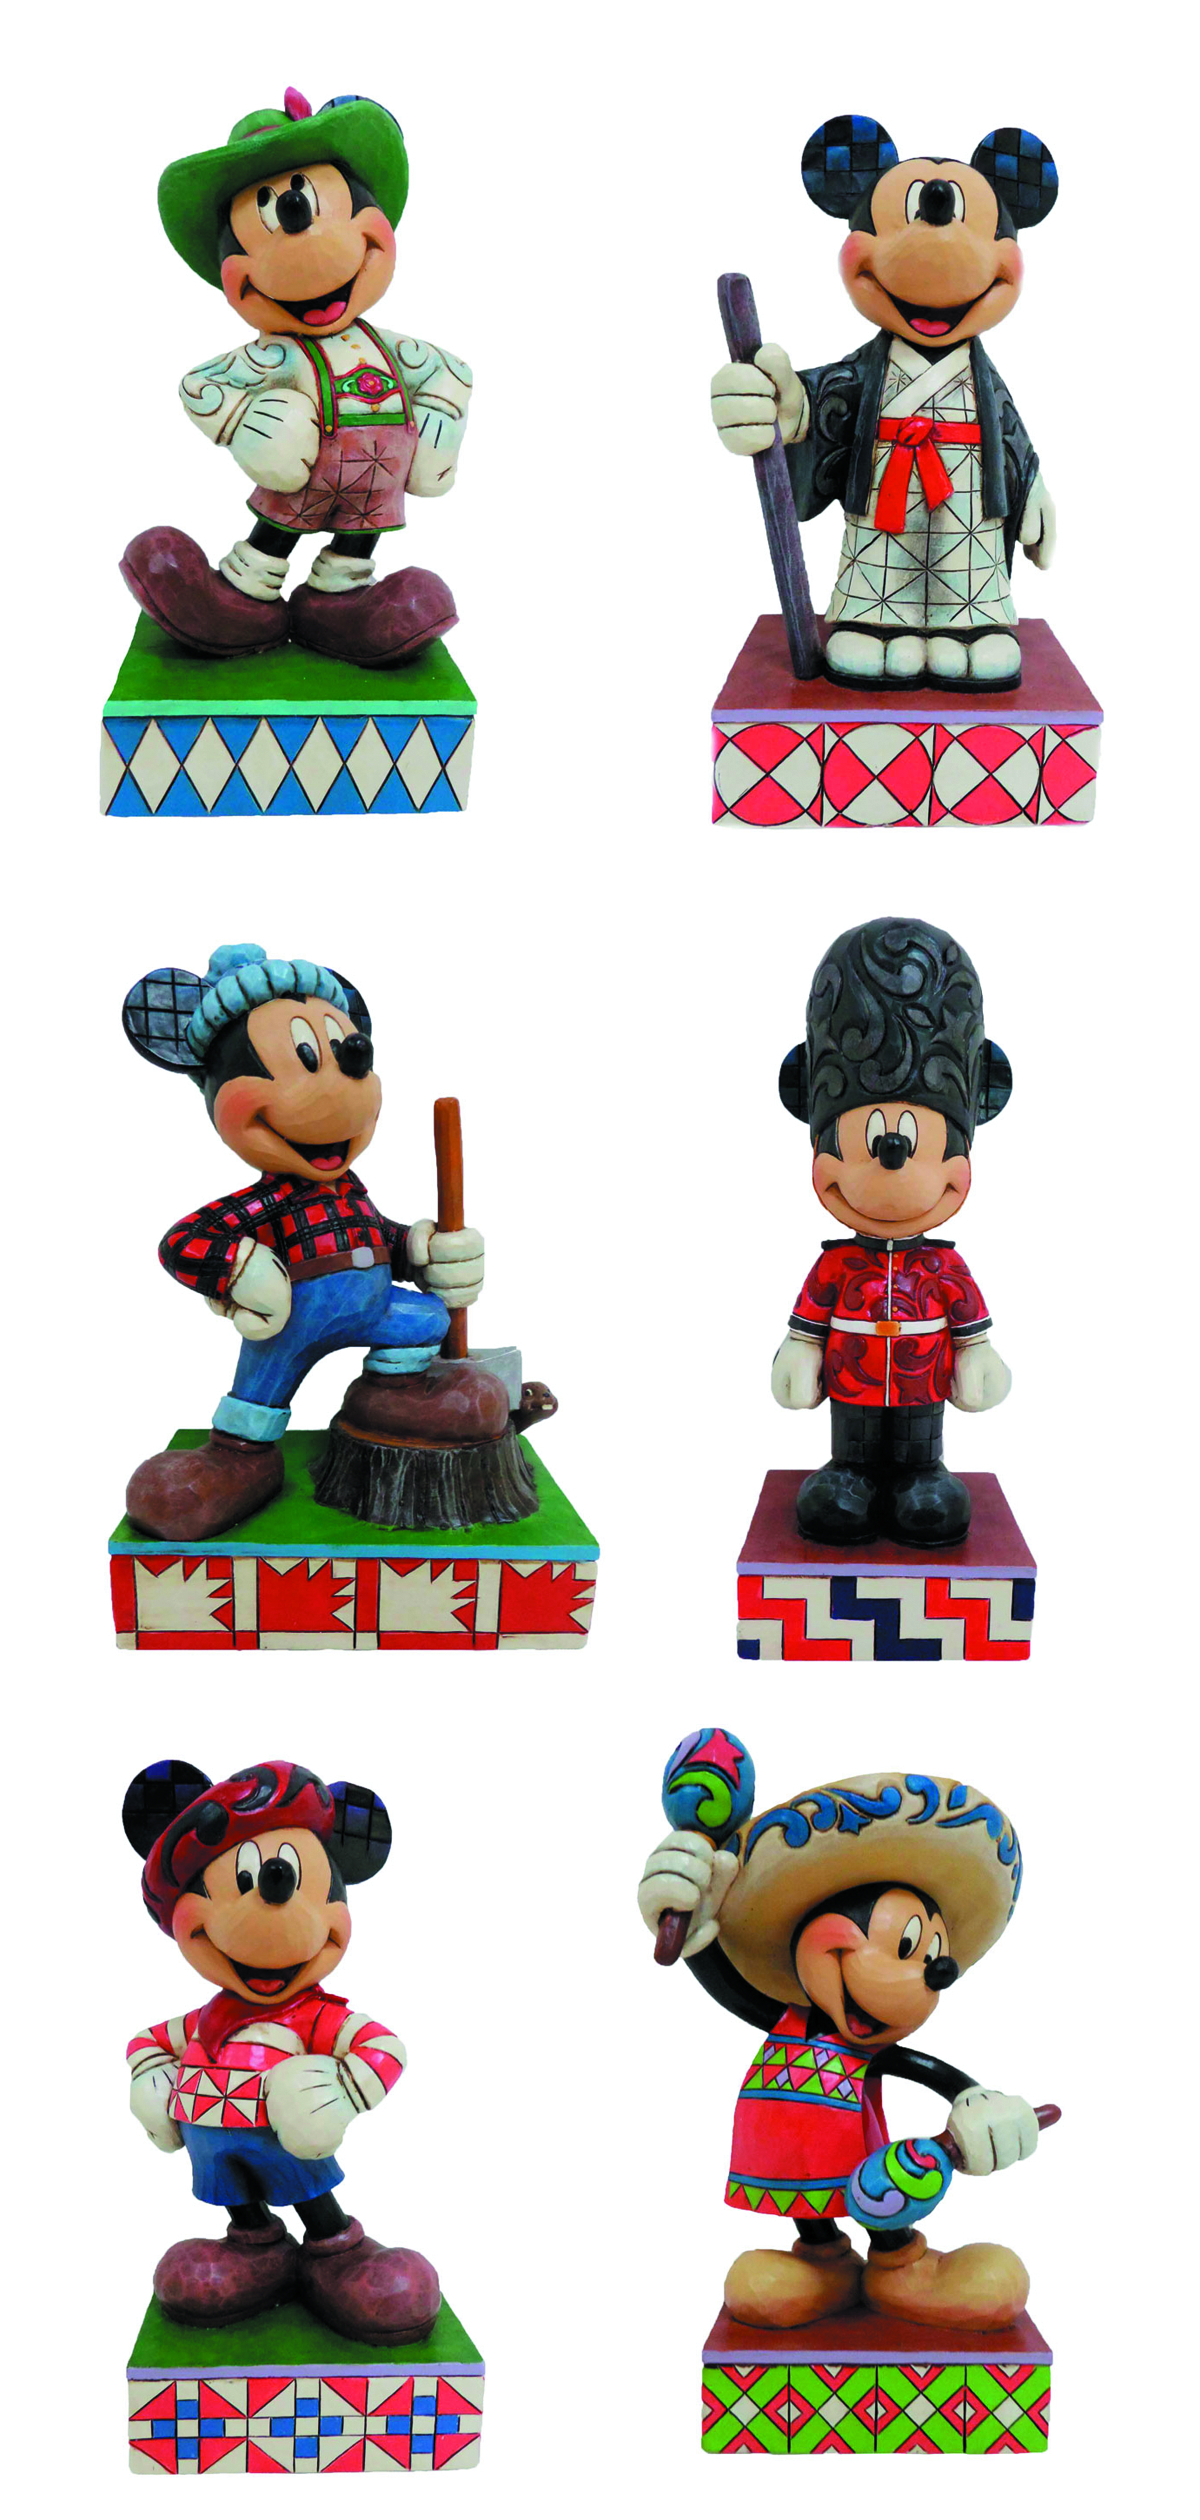 DISNEY TRADITIONS MICKEY AROUND THE WORLD FIG PPK